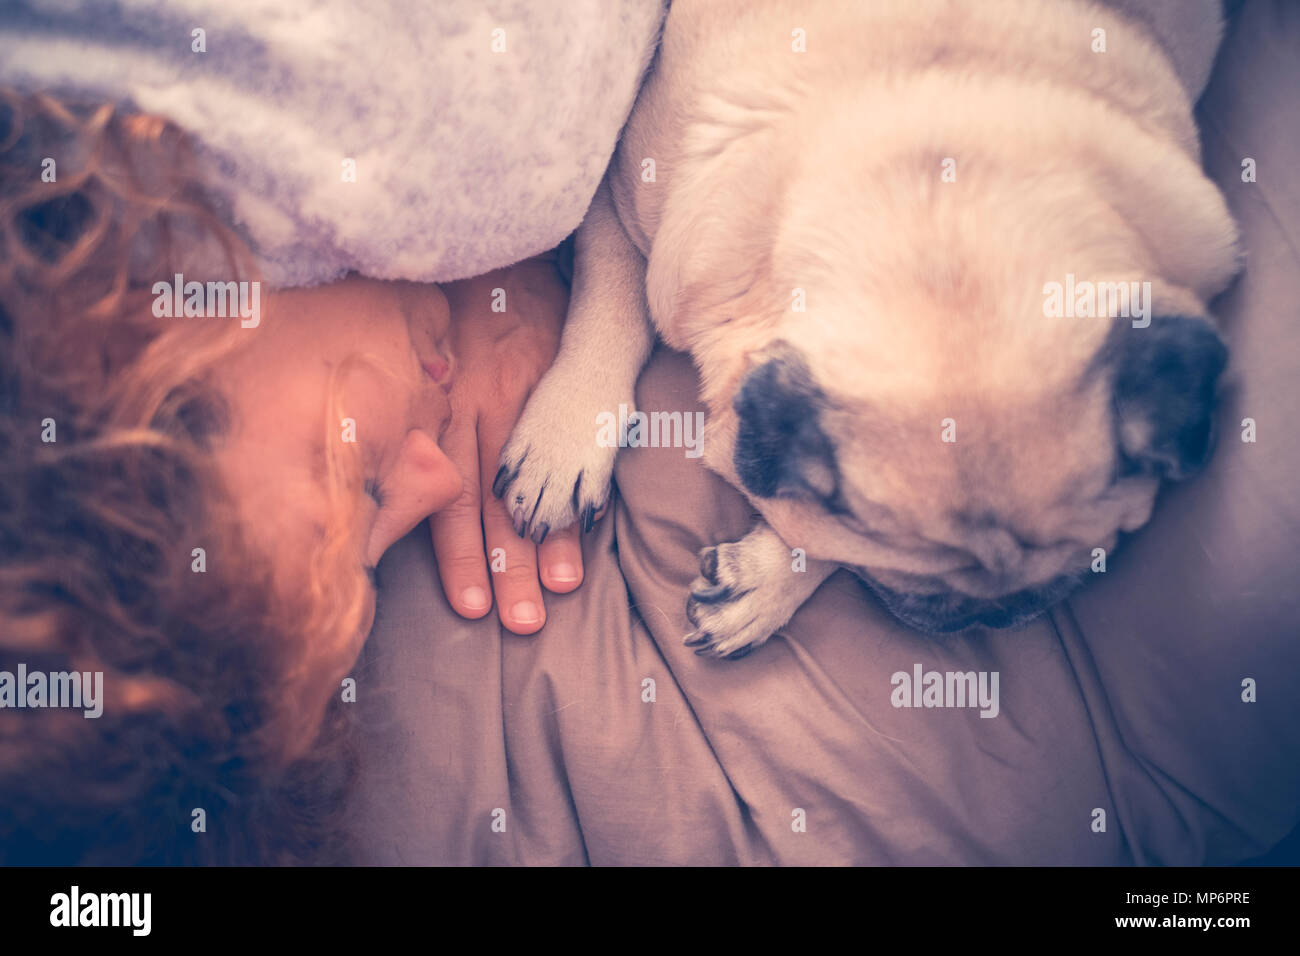 true and great love concept scene between nice beautiful woman and cute puppy dog pug sleeping together with protection and touch hand with paw. conta - Stock Image